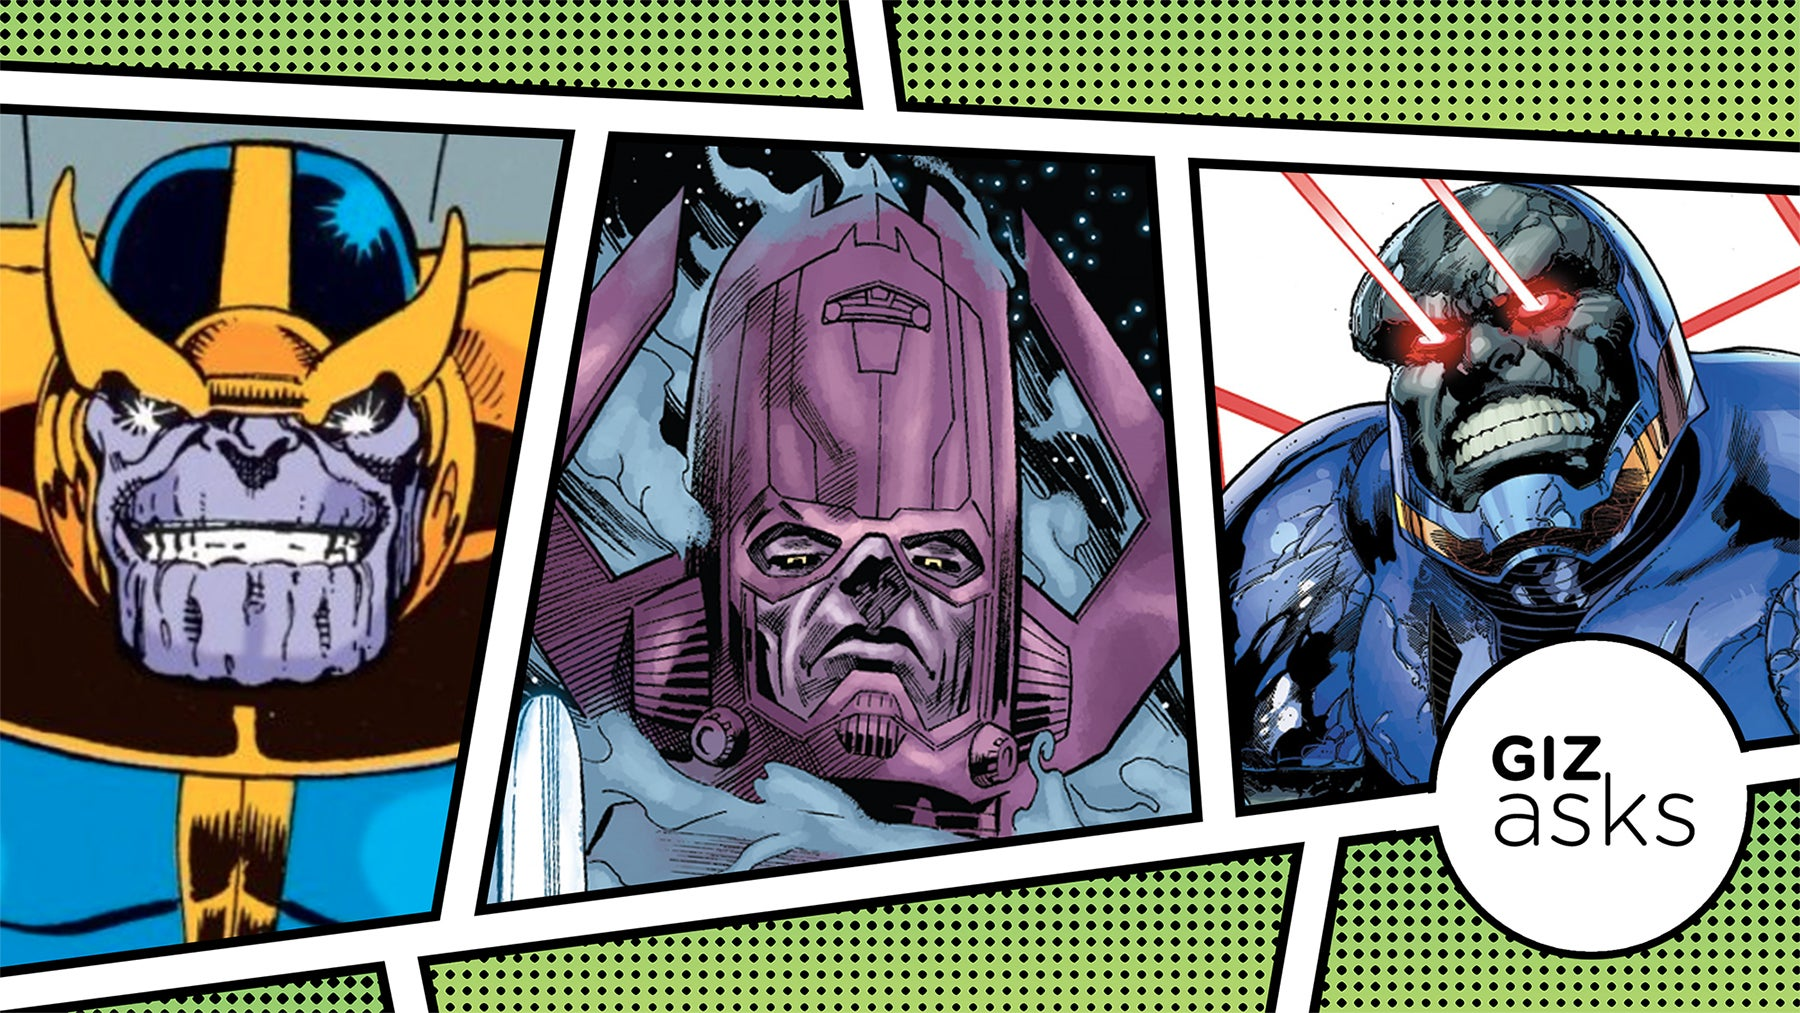 Who Is The Most Powerful Supervillain?